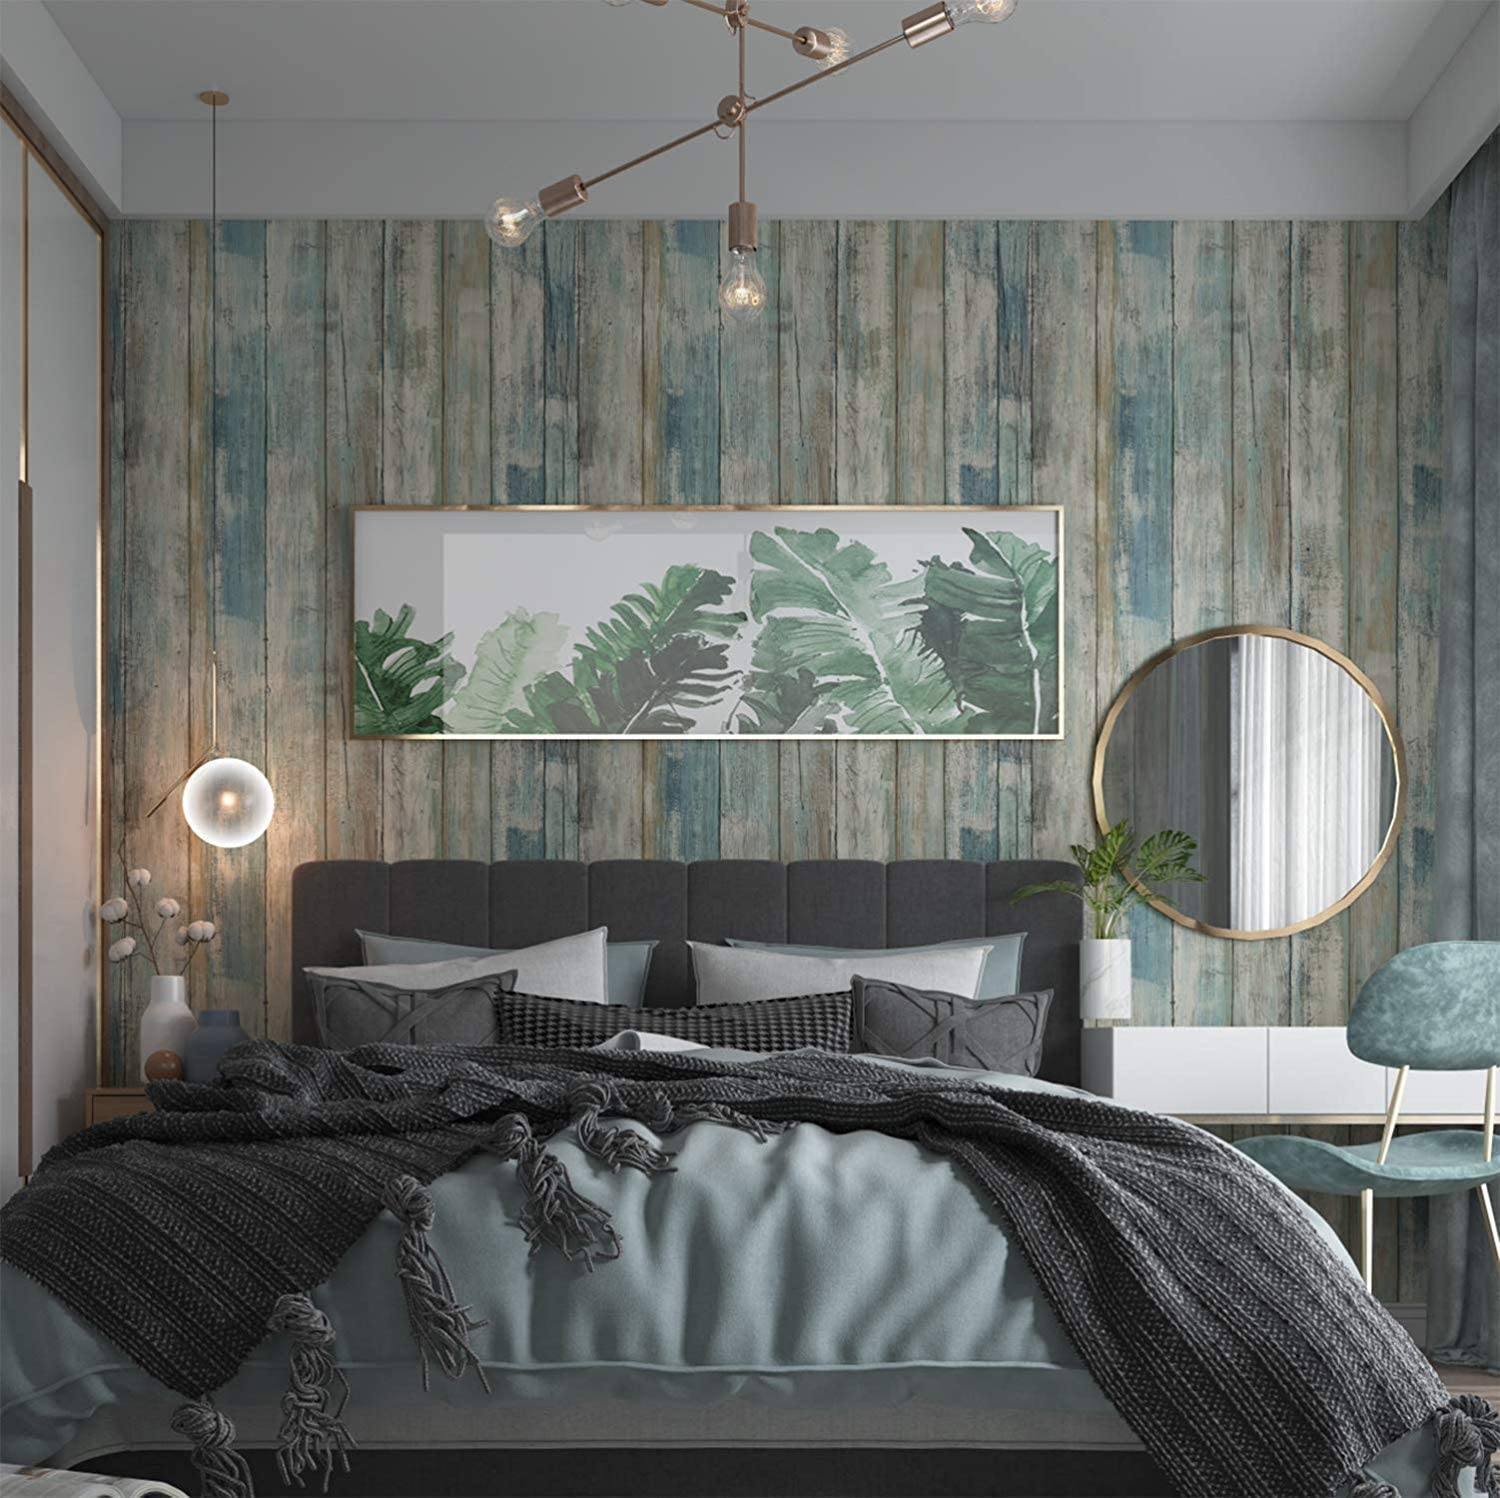 """Wood Wallpaper 11.8"""" X 78.7"""" Self-Adhesive Removable Wood Peel and Stick Paper Decorative Wall Covering Vintage Wood Panel Interior Film for Christmas Decoration"""